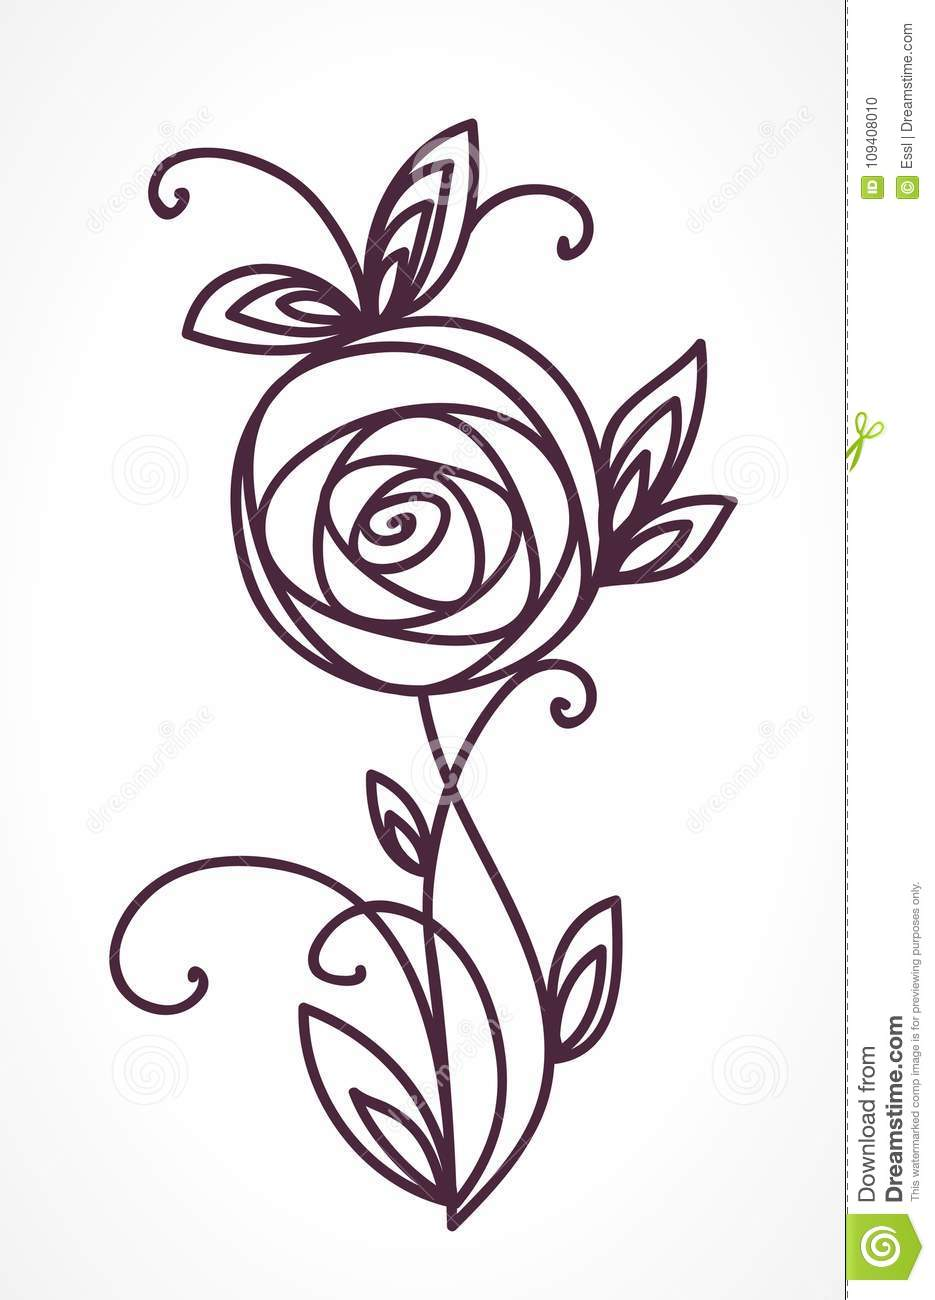 Rose stylized flower bouquet hand drawing stock vector stylized flower bouquet hand drawing stock vector illustration of fashion branch izmirmasajfo